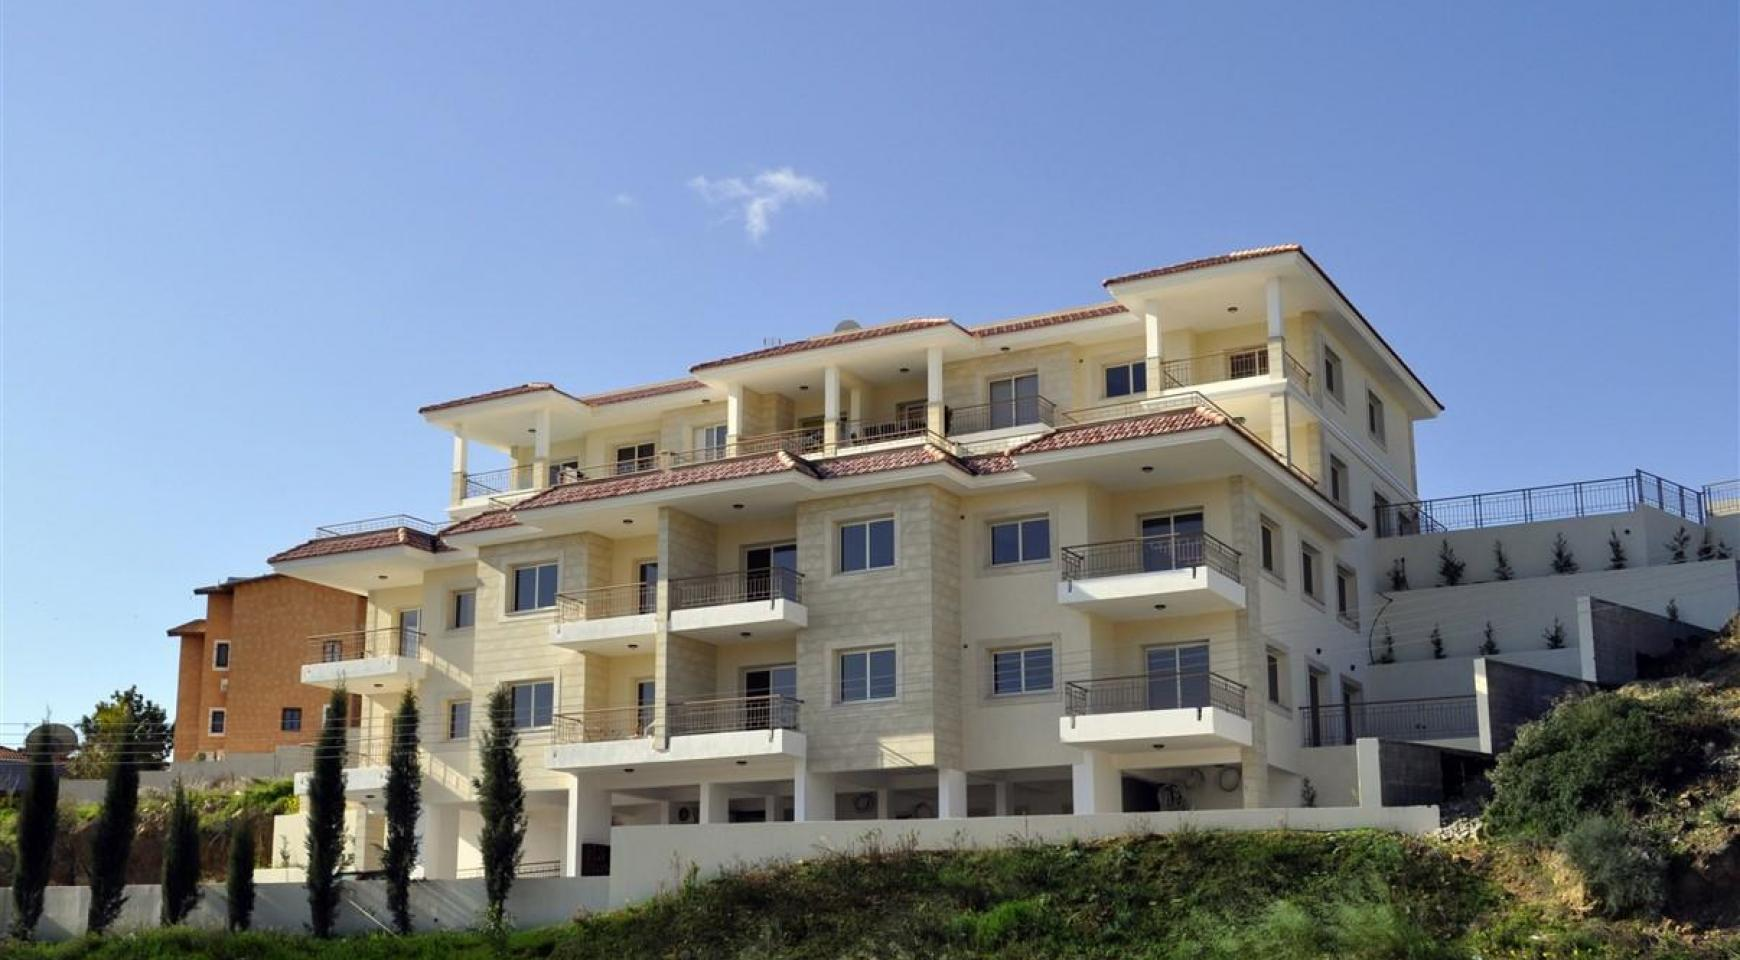 2 Bedroom Apartment with Amazing Views in Agios Athanasios - 1